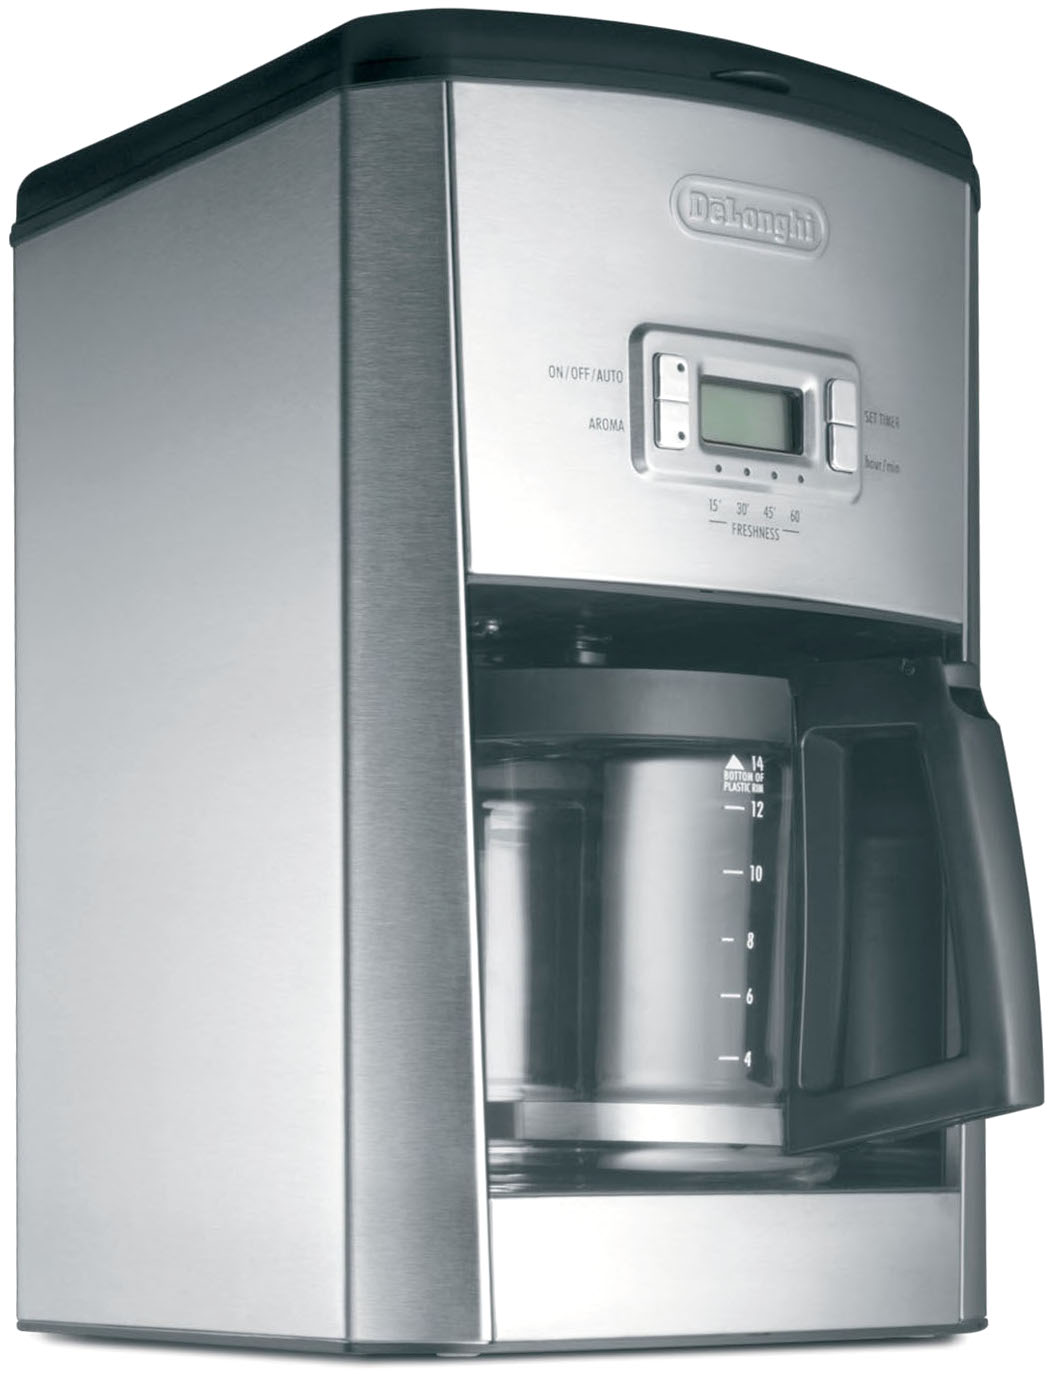 DeLonghi 14 Cup Programmable Drip Coffee Maker